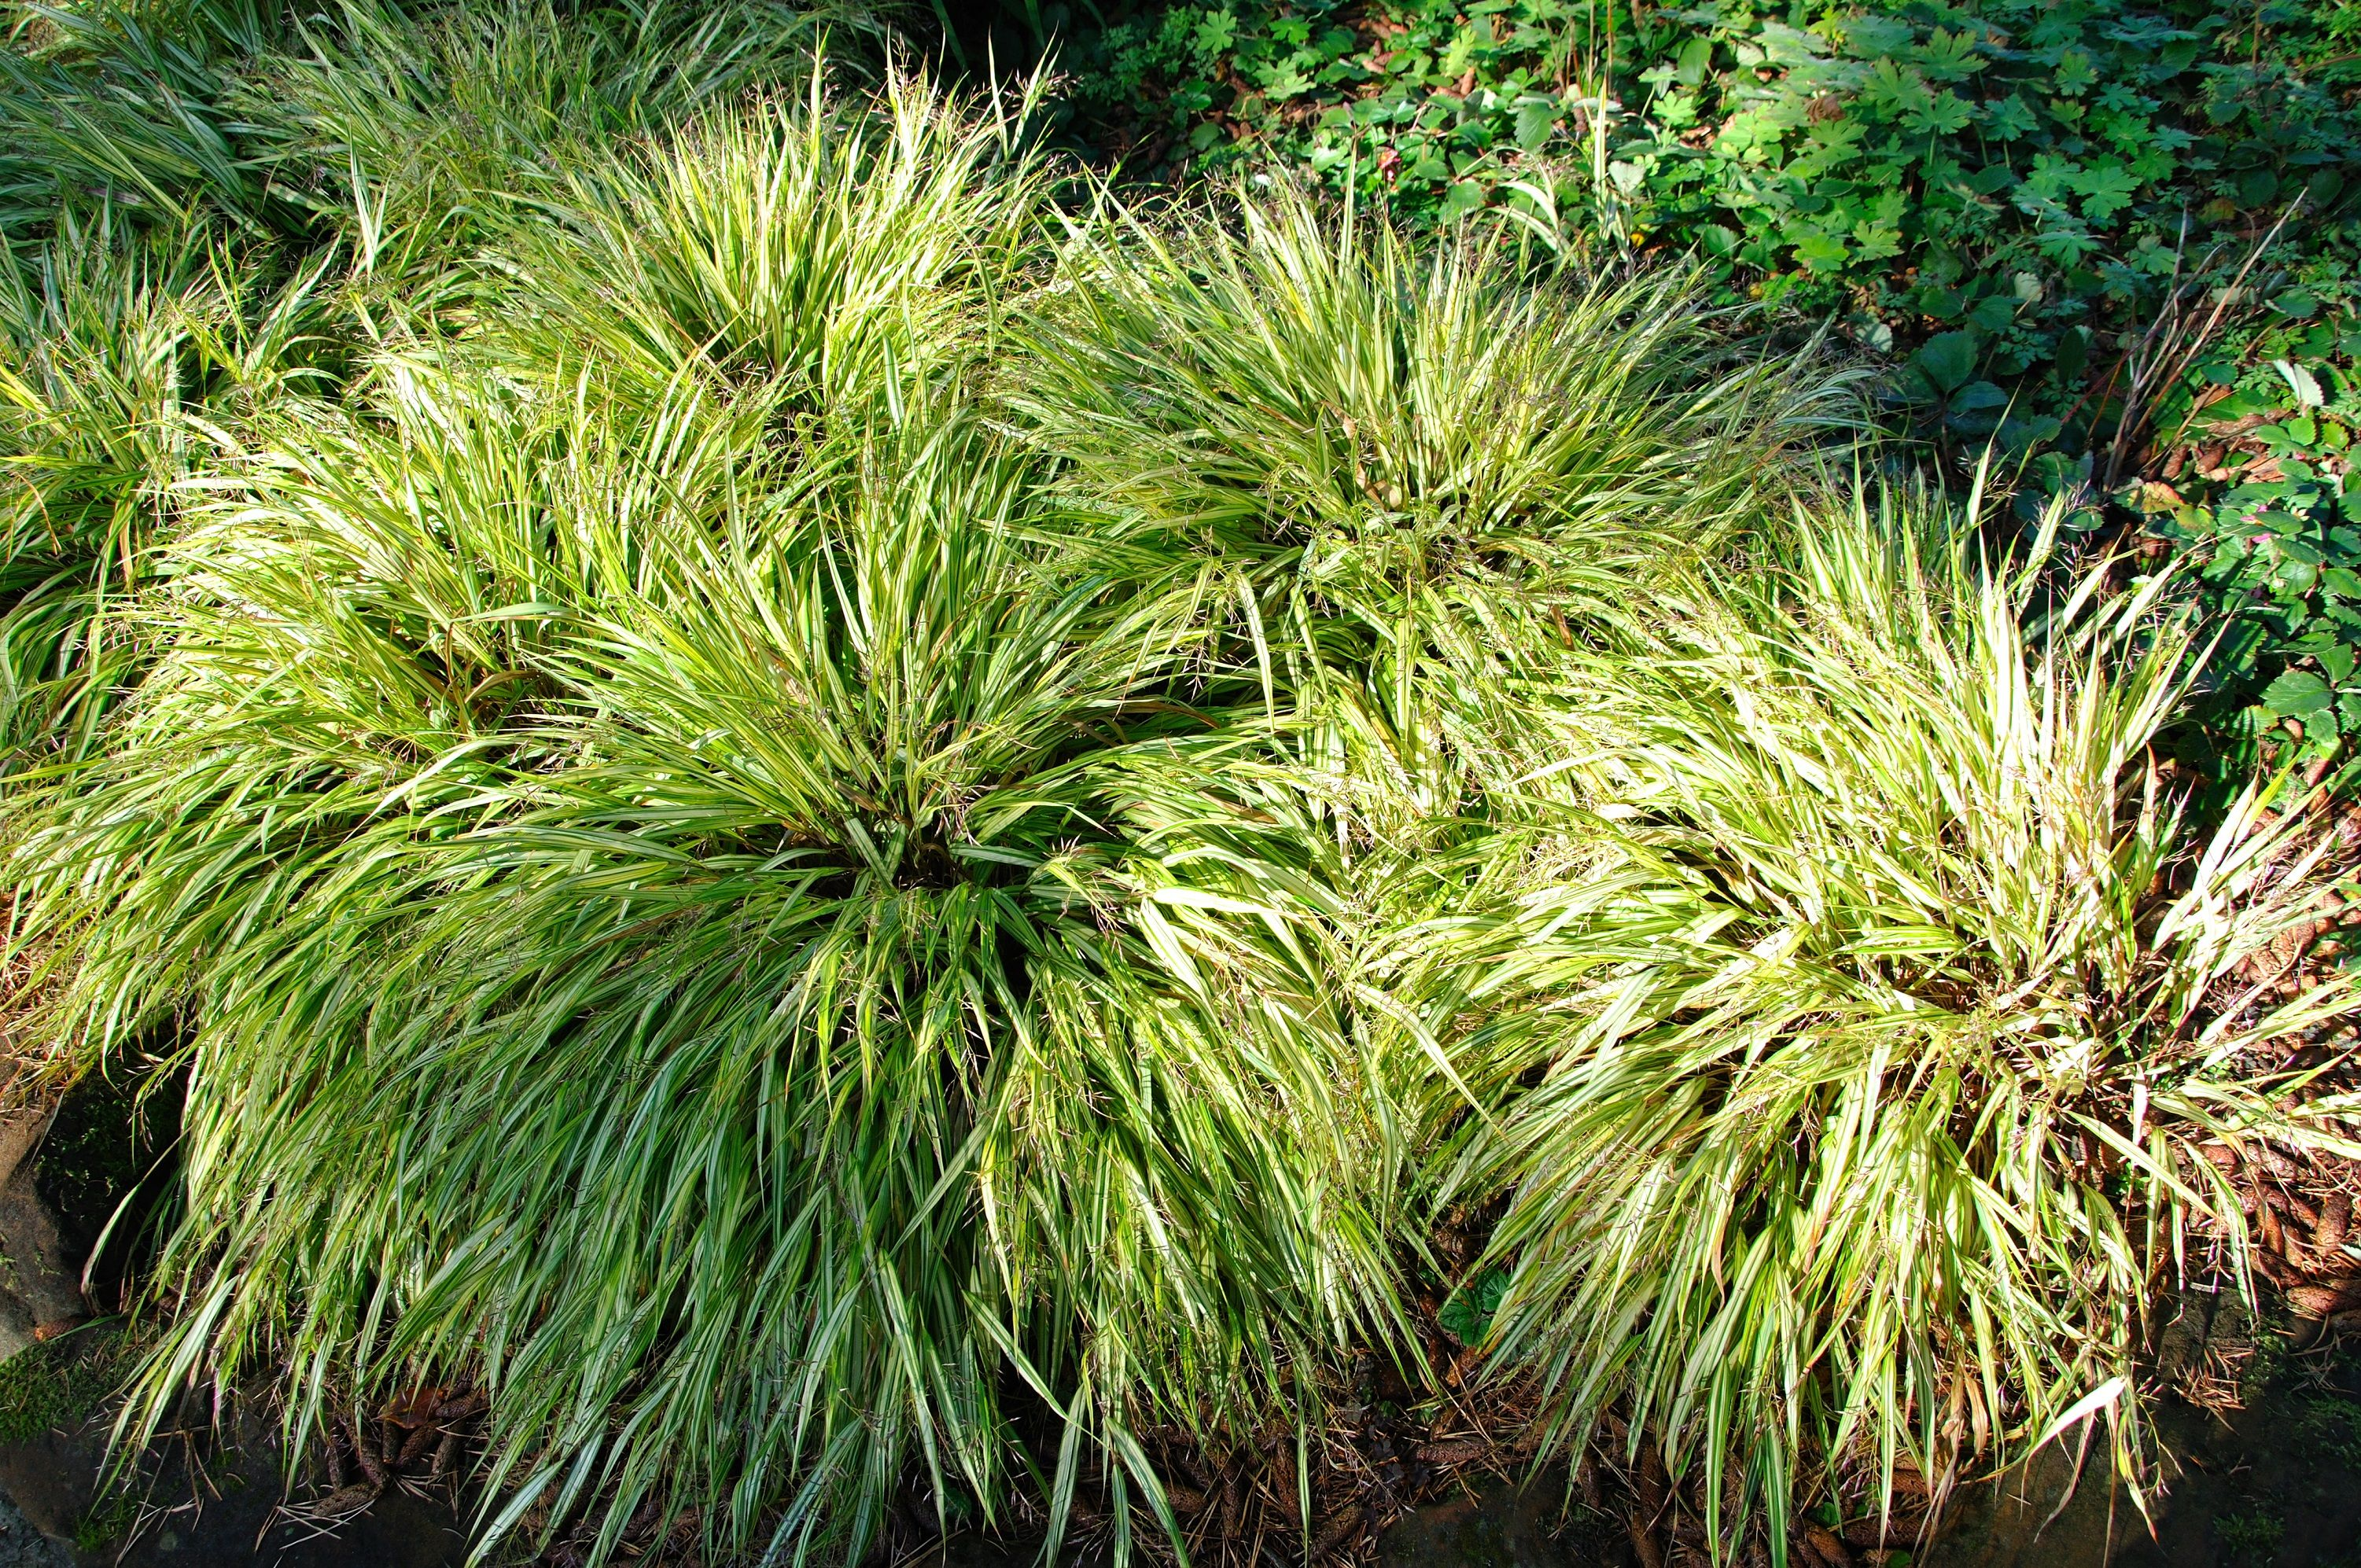 Featuring thousands of species, #grass flows with the #wind, adding #movement and #texture to a #garden. We have many fine examples beautifully arranged in our gardens. #ComptonAcres